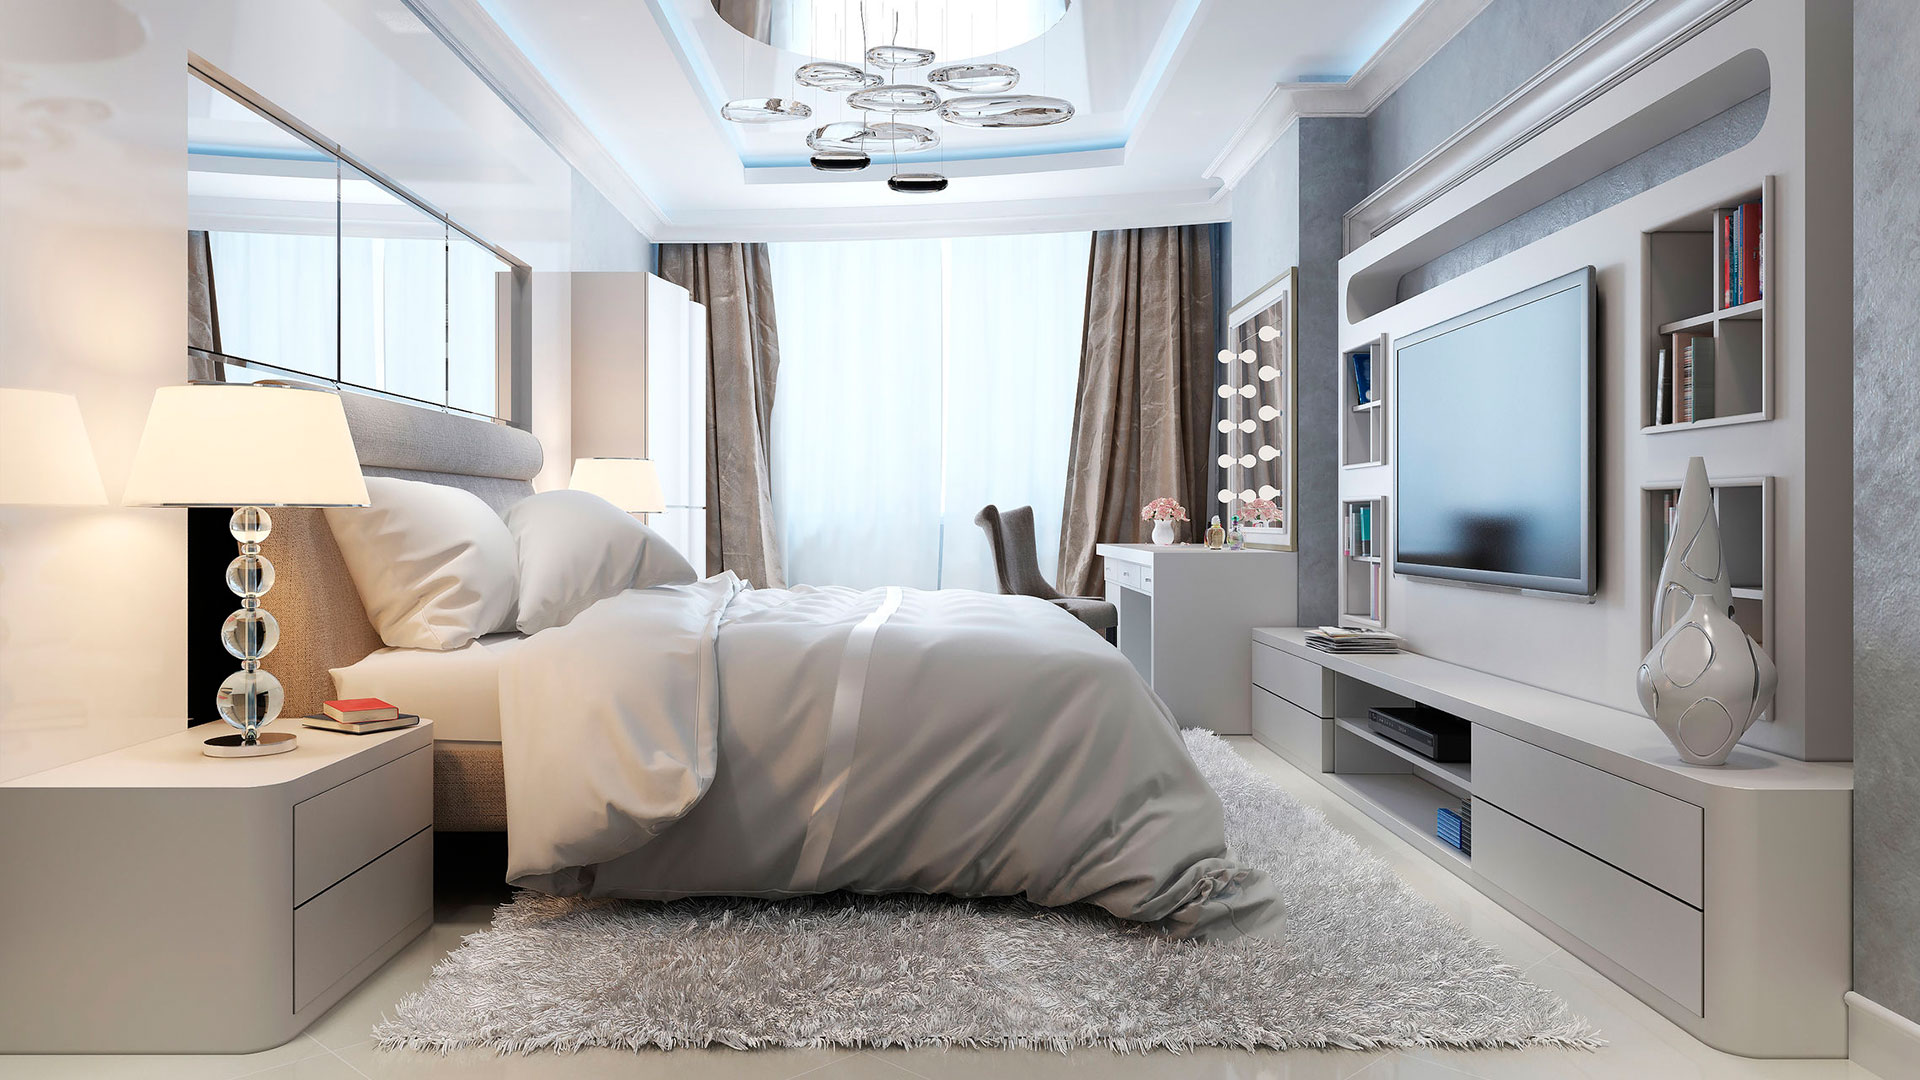 5 Tips To Light Up Your Bedroom